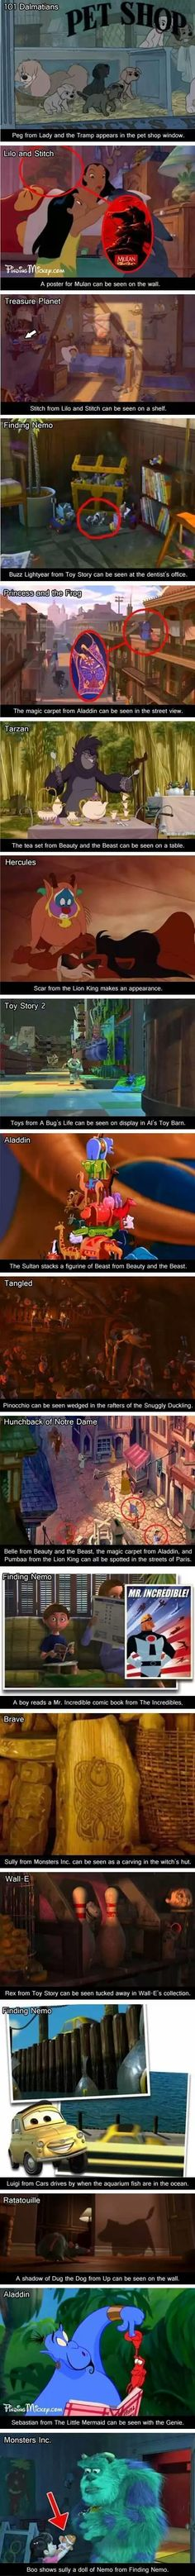 Disney Movies Inside Other Disney Movies. I knew most of these but some are new :D